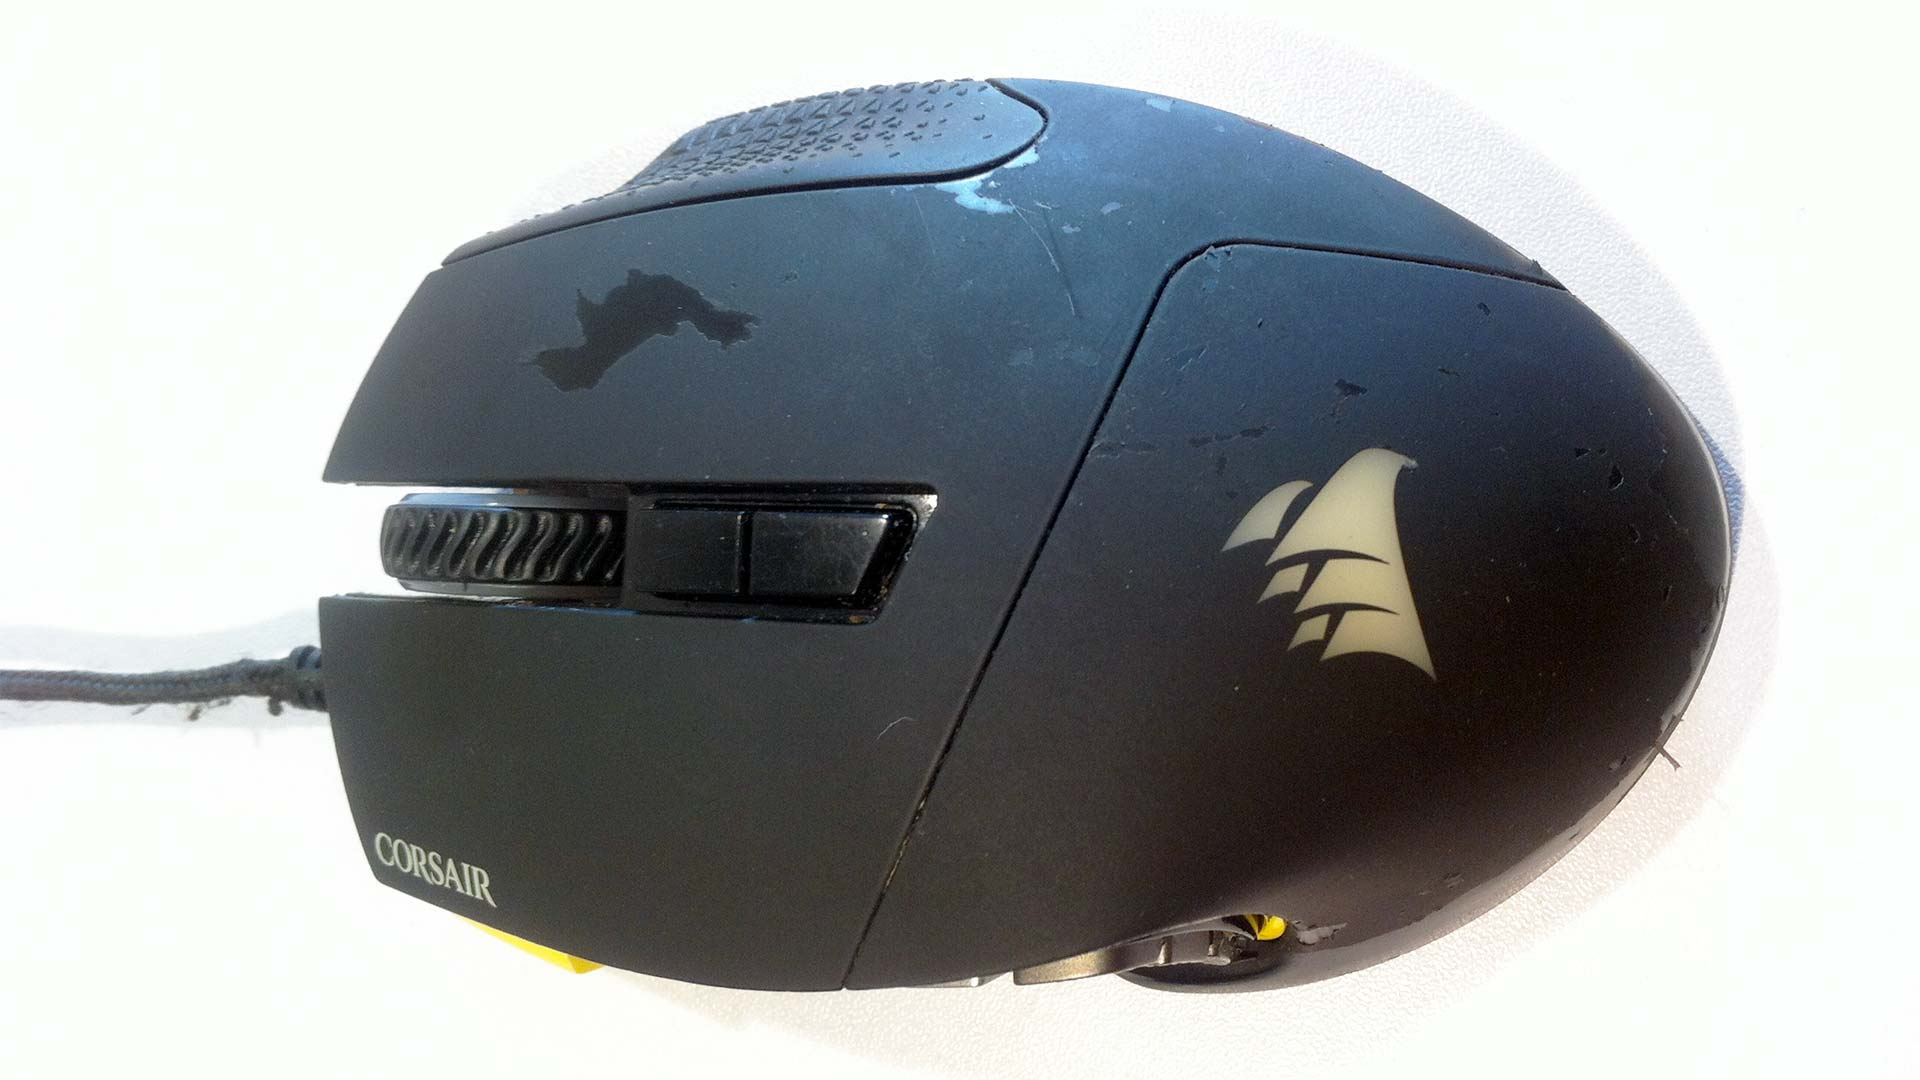 Corsair Scimitar - Paint peeling from excessive wear.